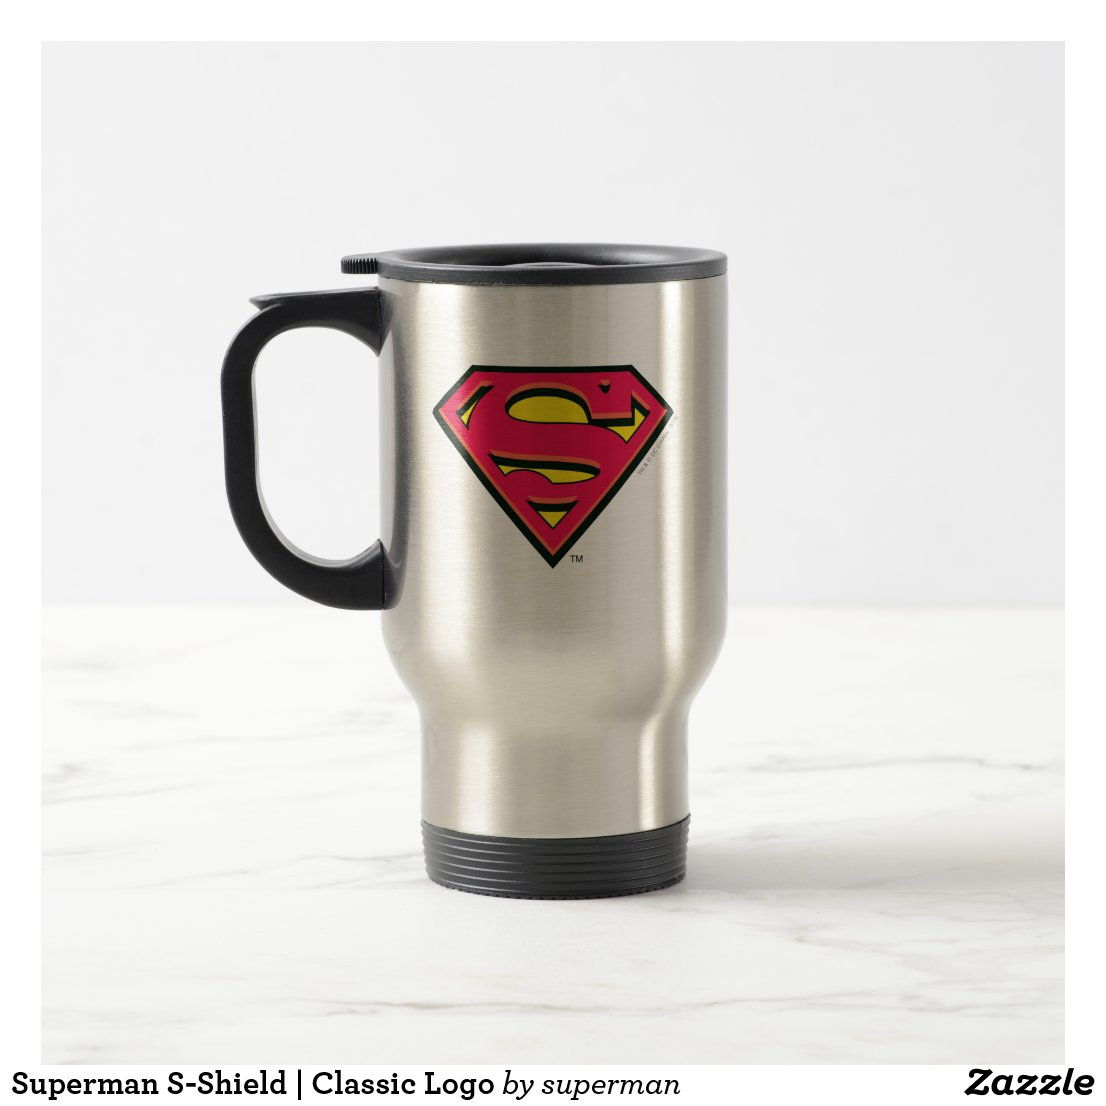 Superman S-Shield | Classic Logo